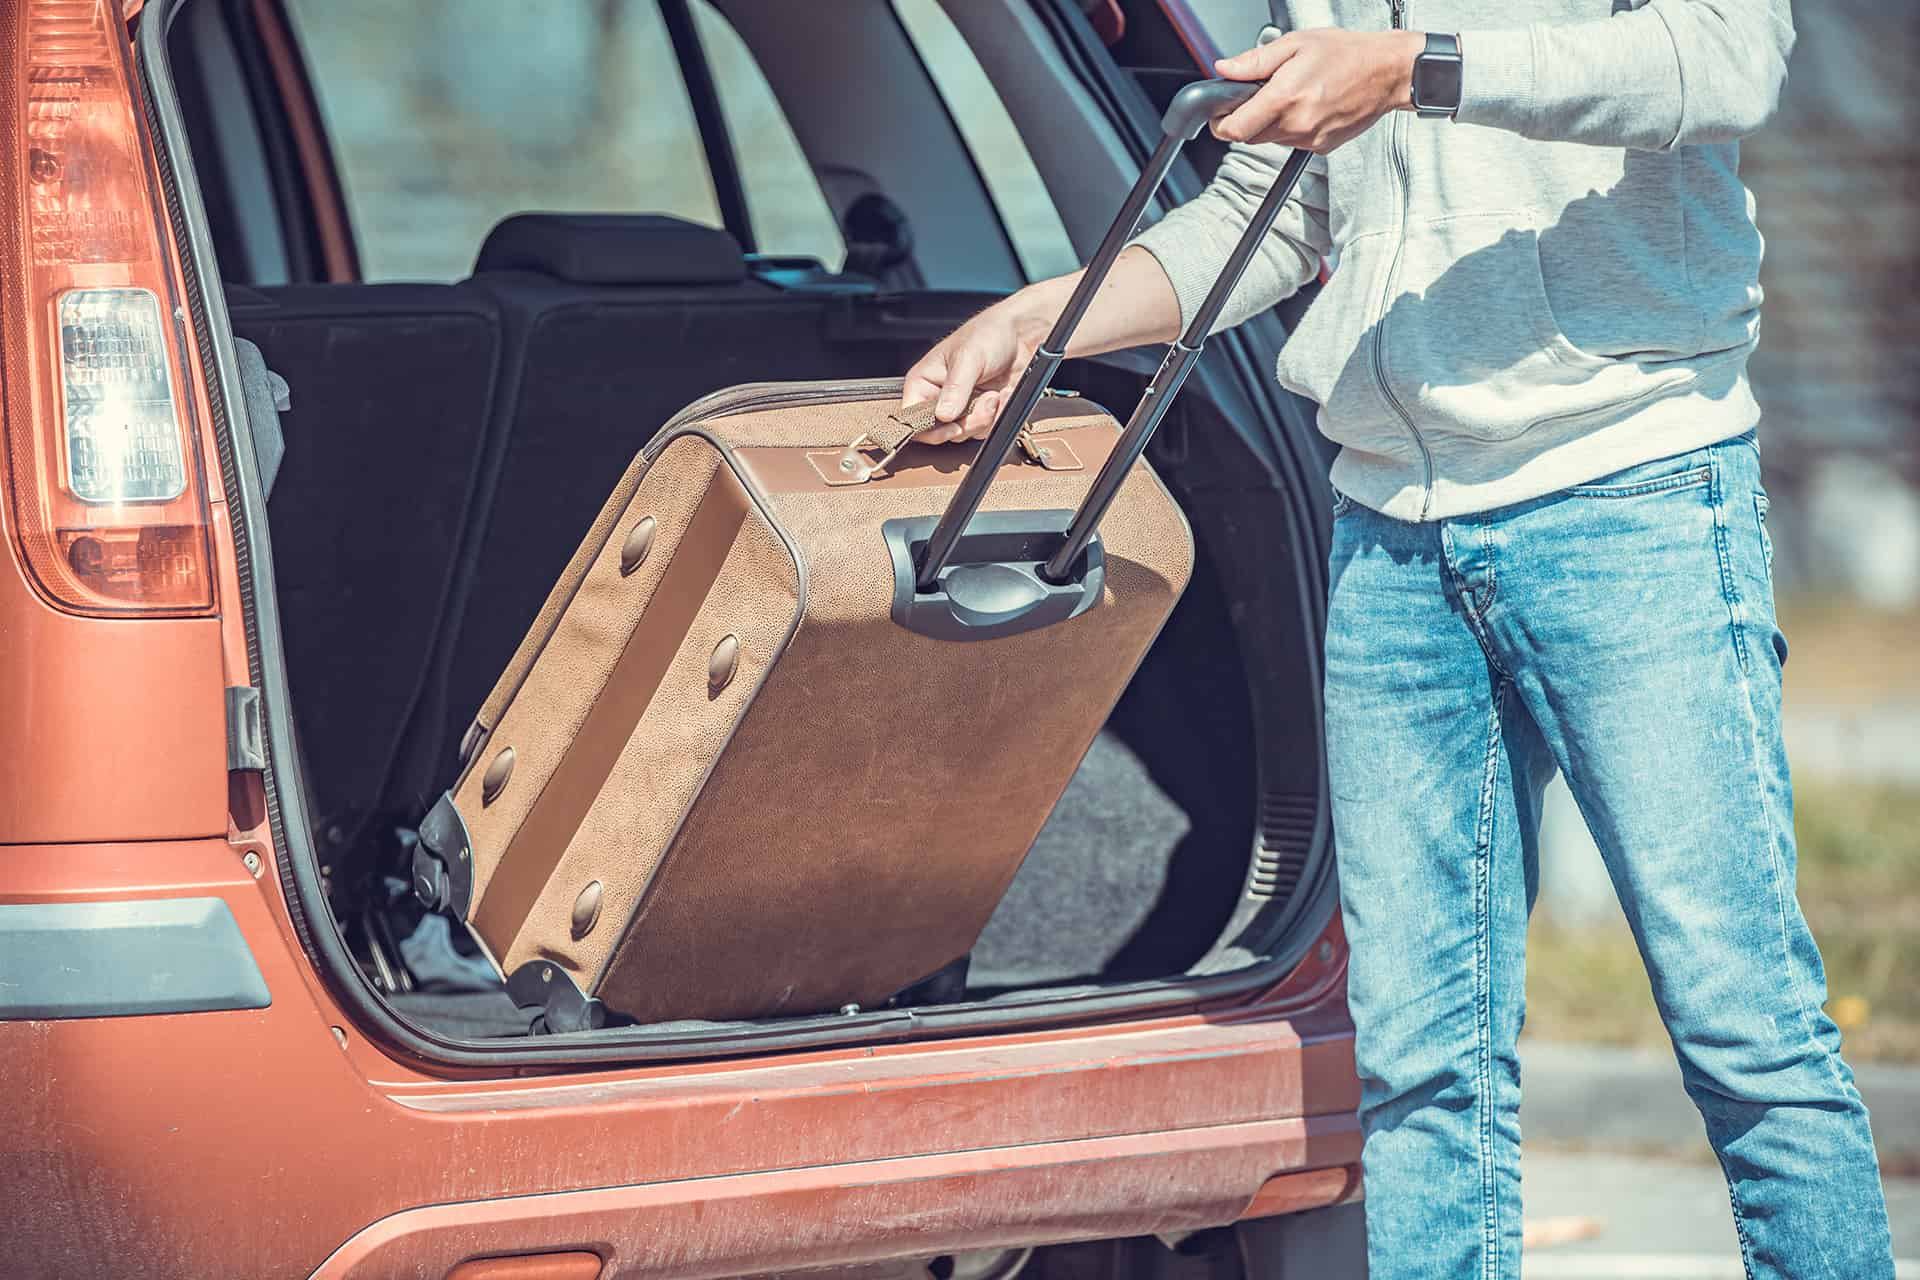 A young man puts luggage in the trunk of a car.